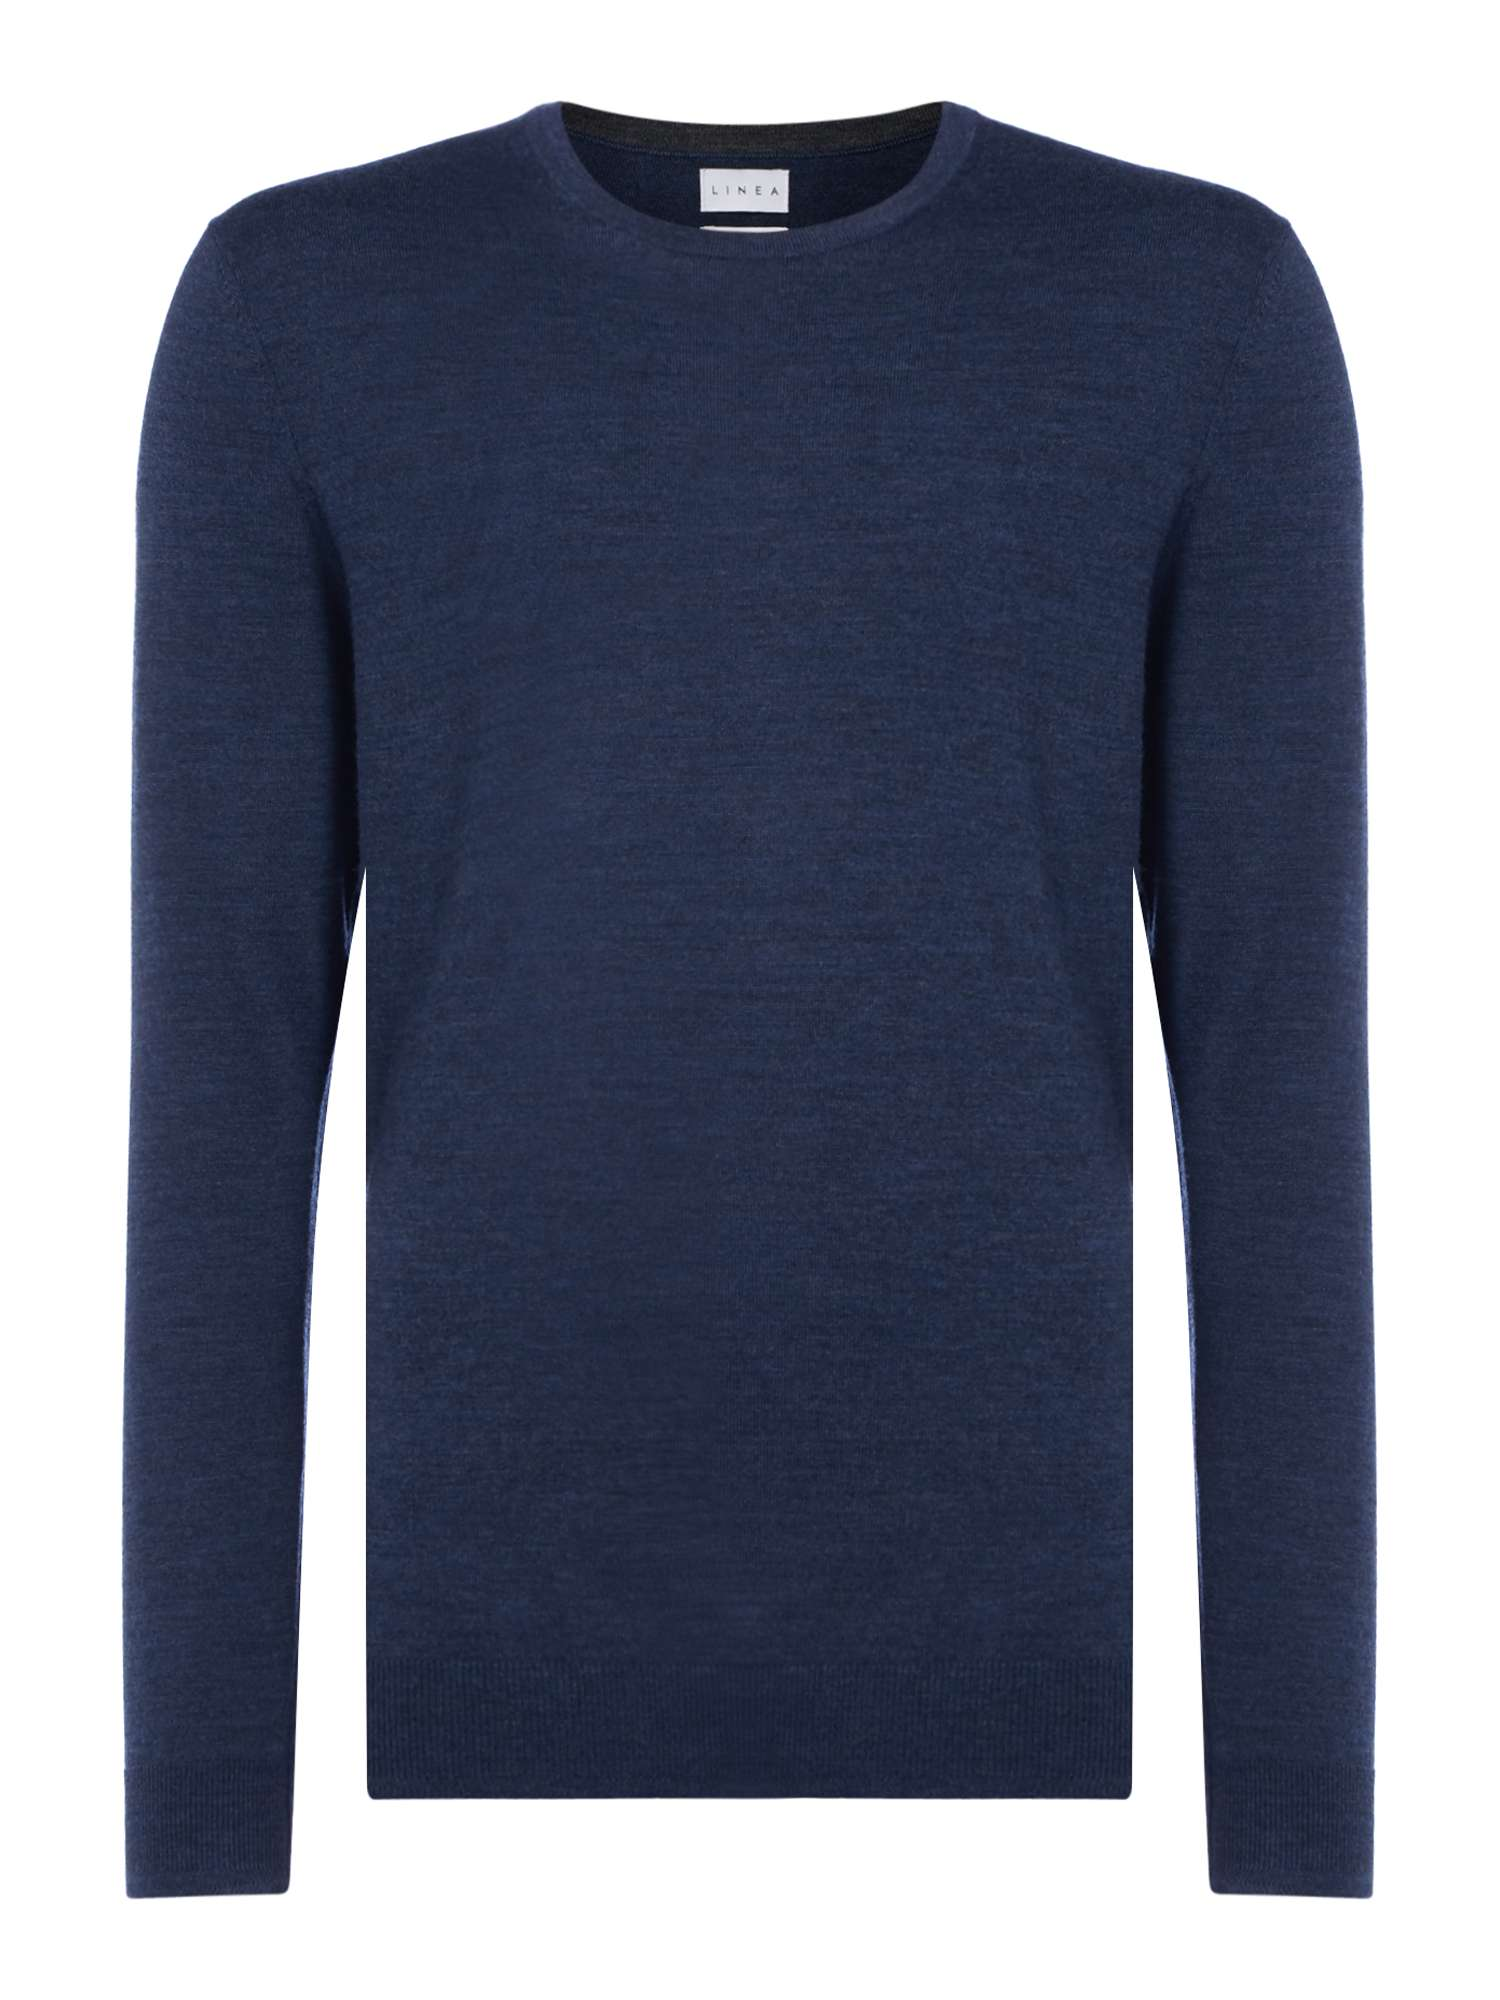 Men s Knitwear   Knitwear for Men - House of Fraser feb9021ebe4